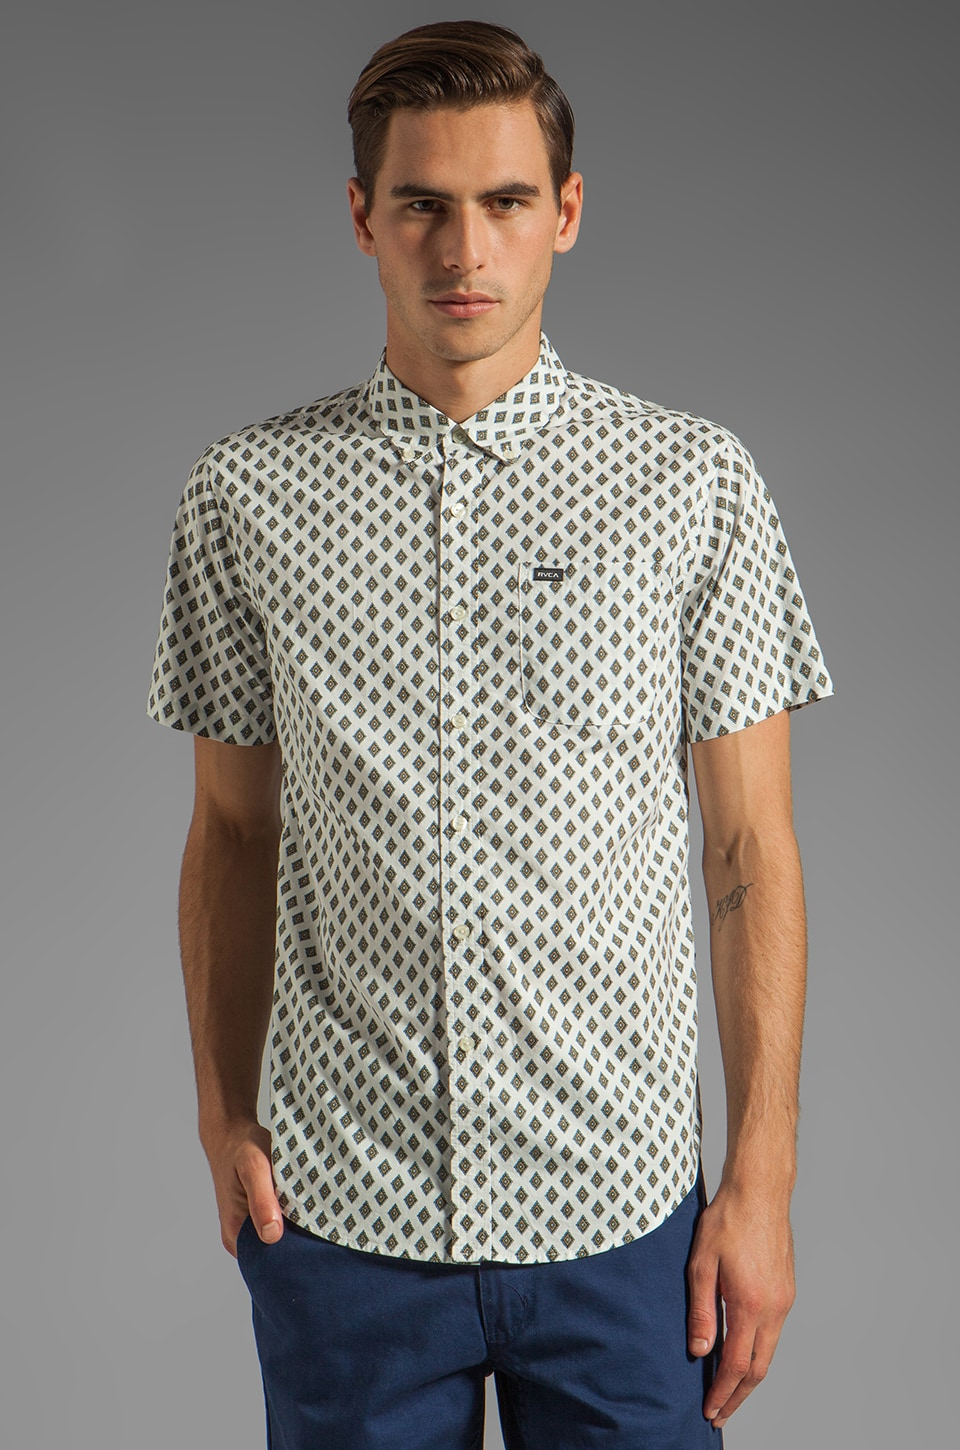 RVCA Falling S/S Shirt in Vintage White